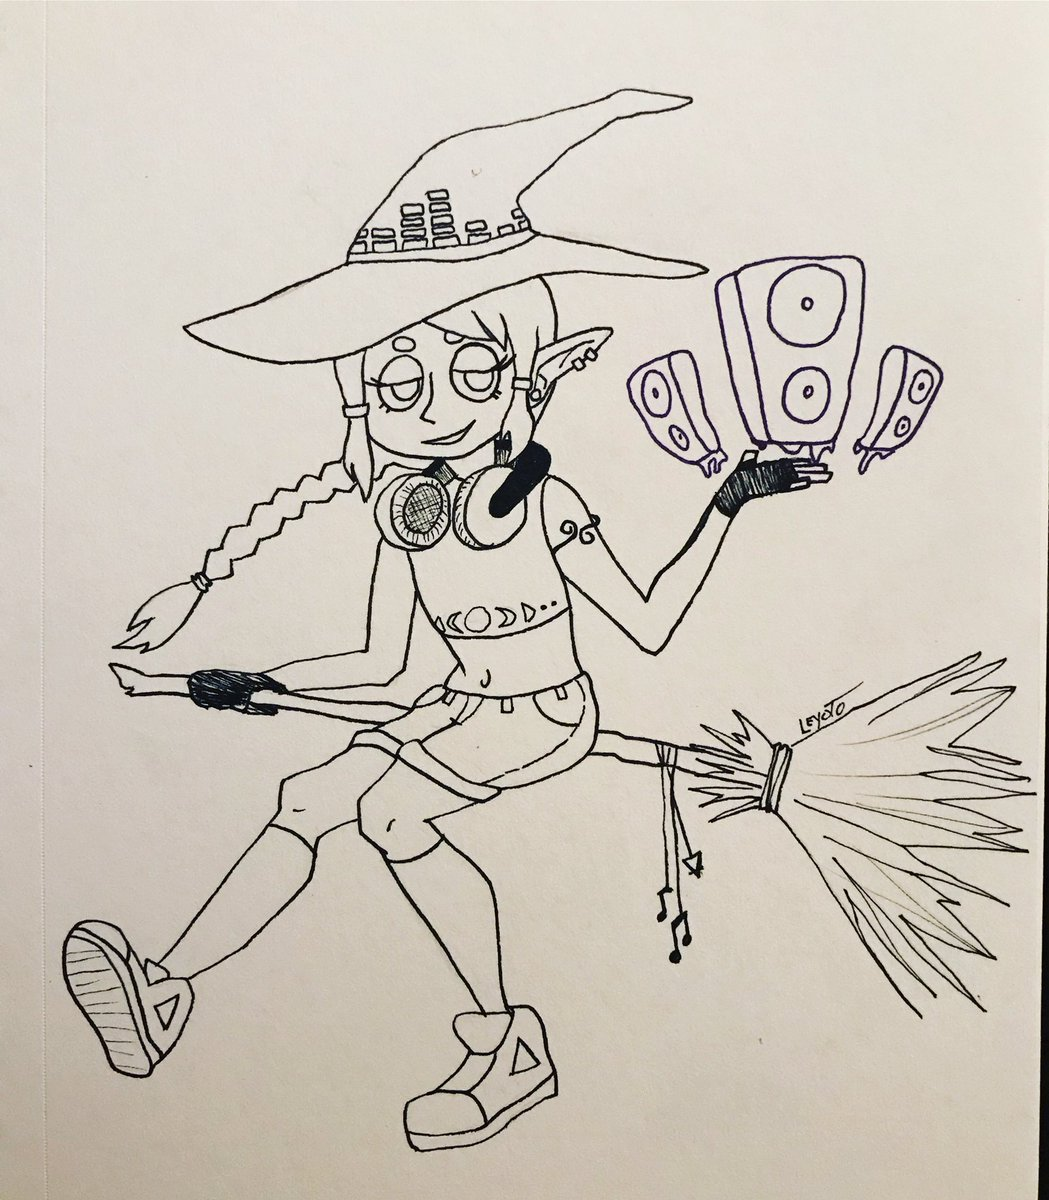 #inktober day 2! I had to tell myself to just stop before I ruined the entire picture